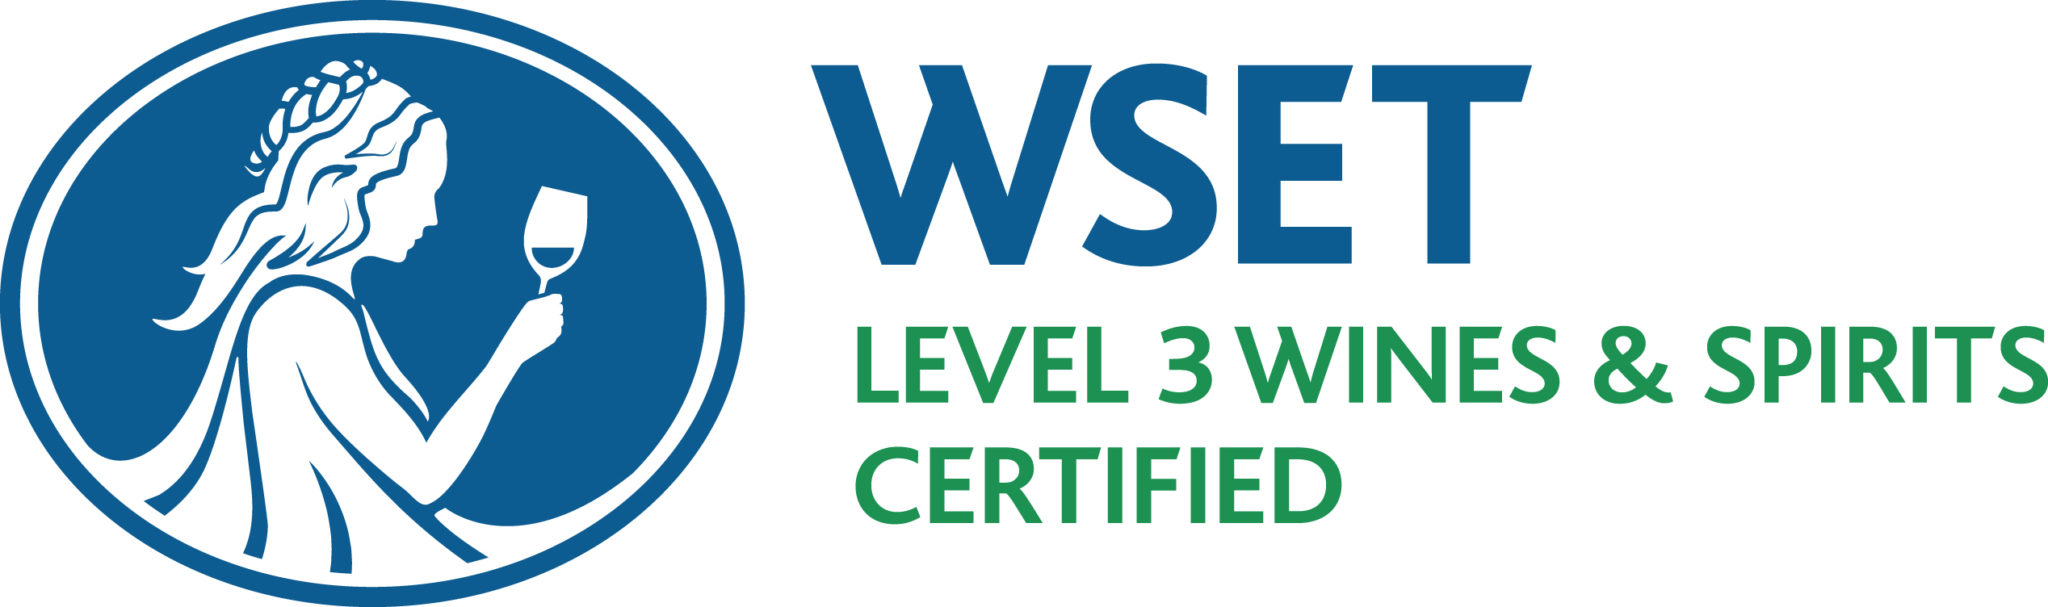 WSET Level 3 Wine and Spirit certified logo